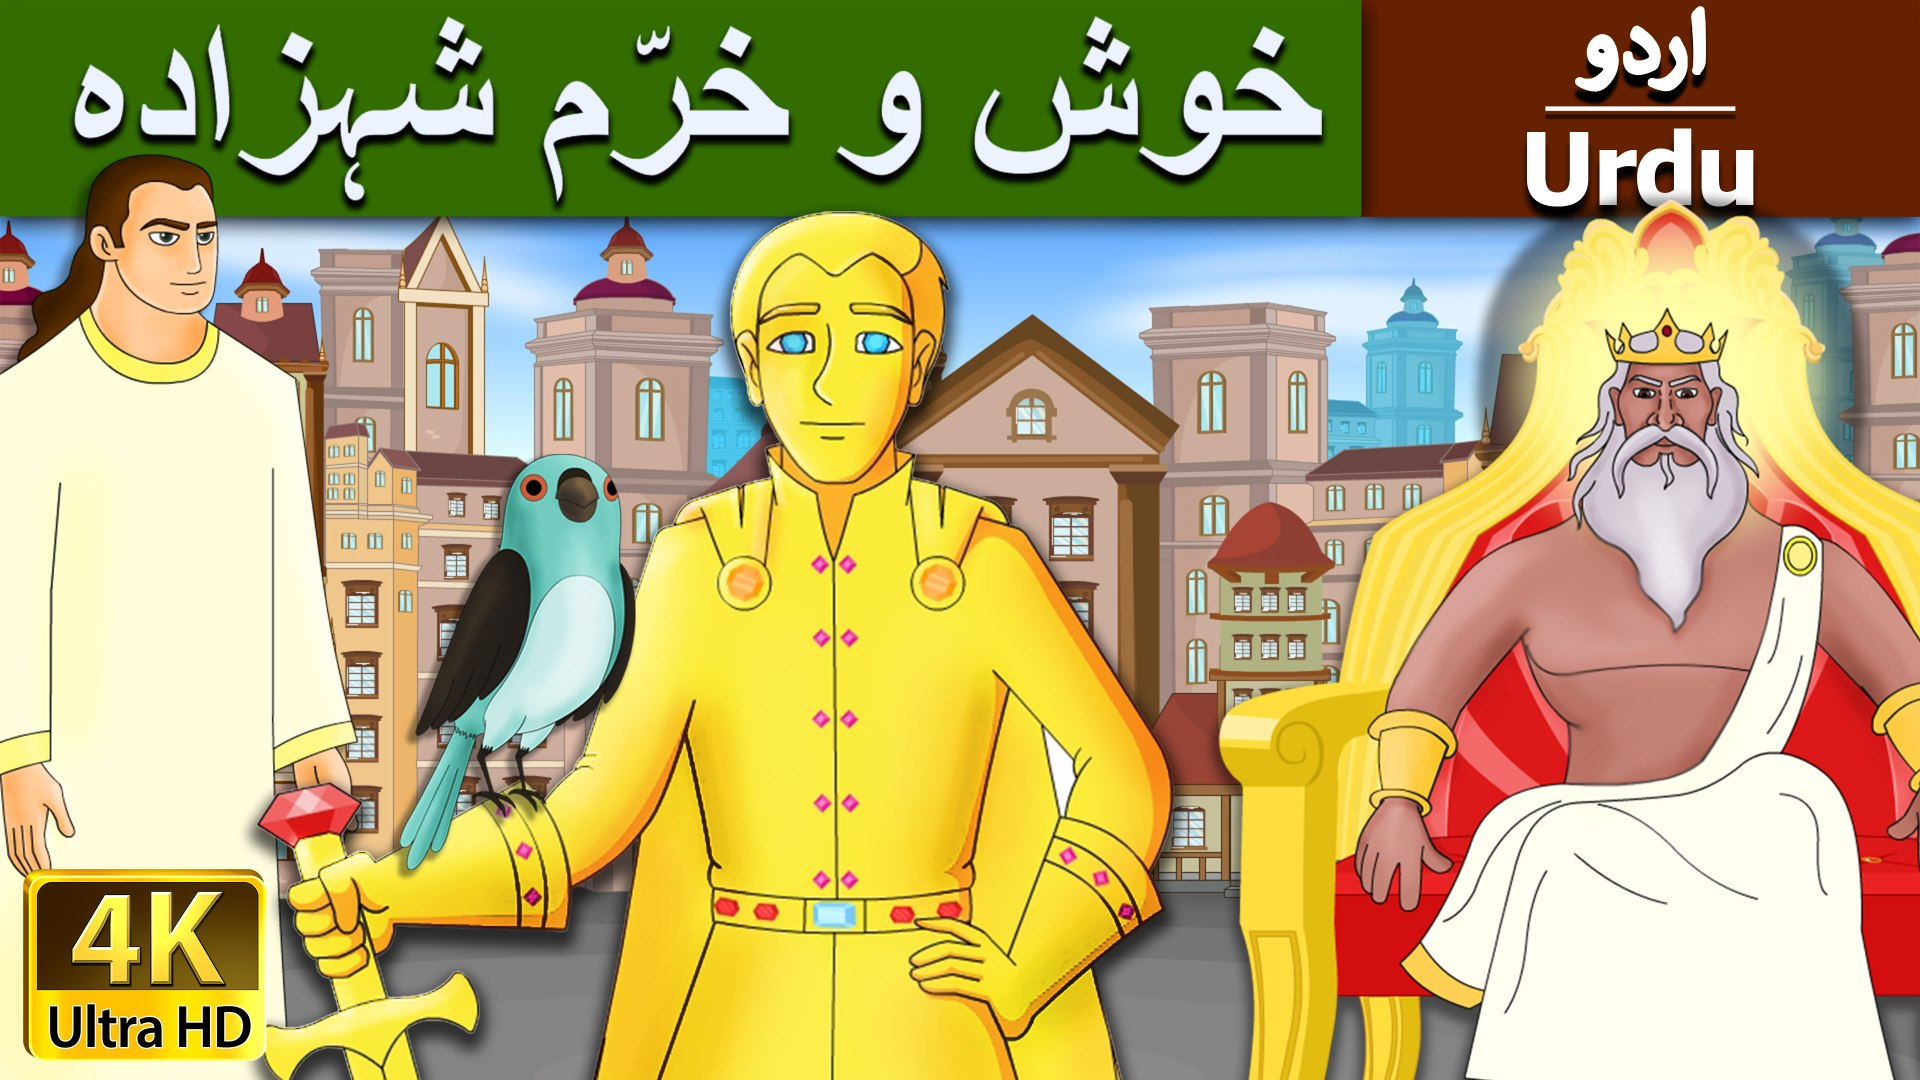 The Happy Prince in Urdu - 4K UHD - Urdu Fairy Tales